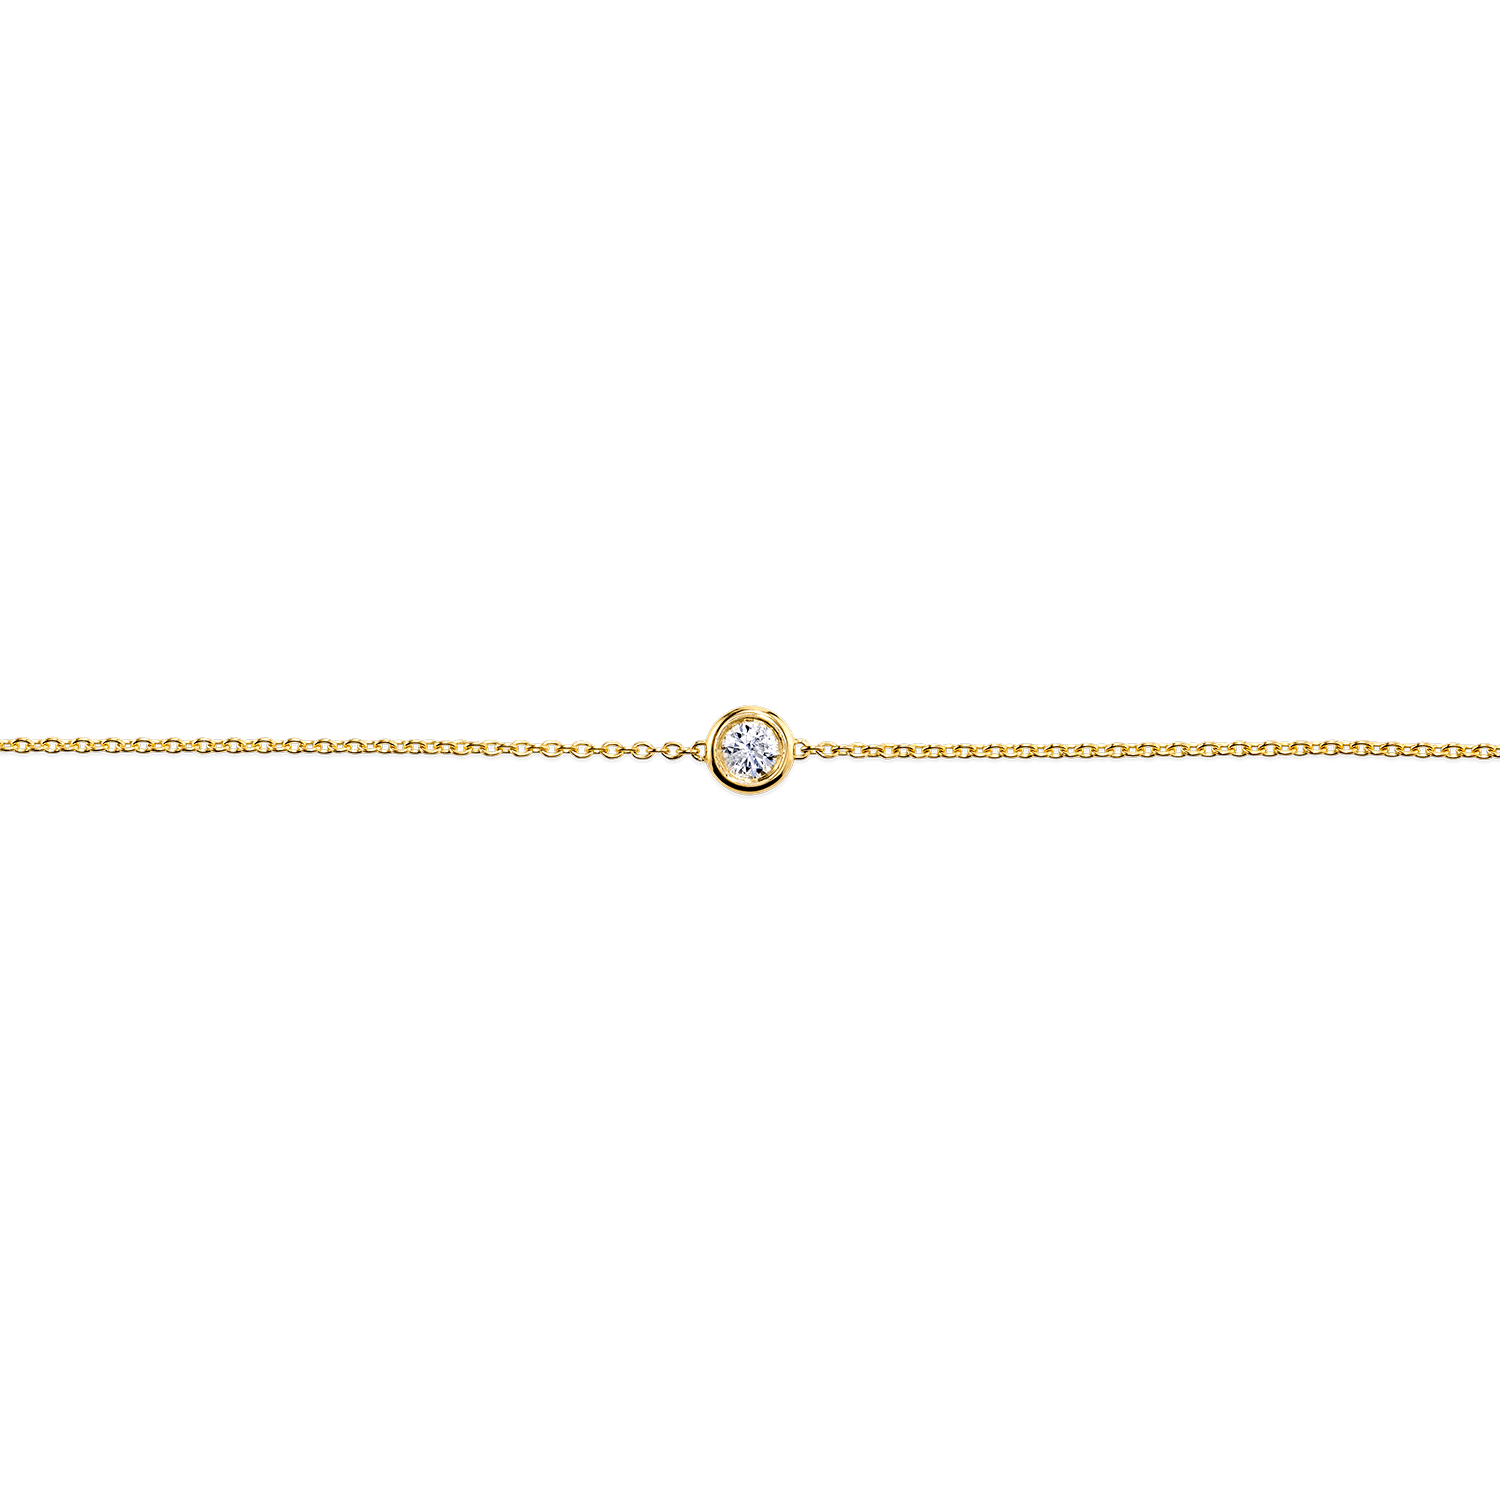 Solitaire Diamond Bracelet